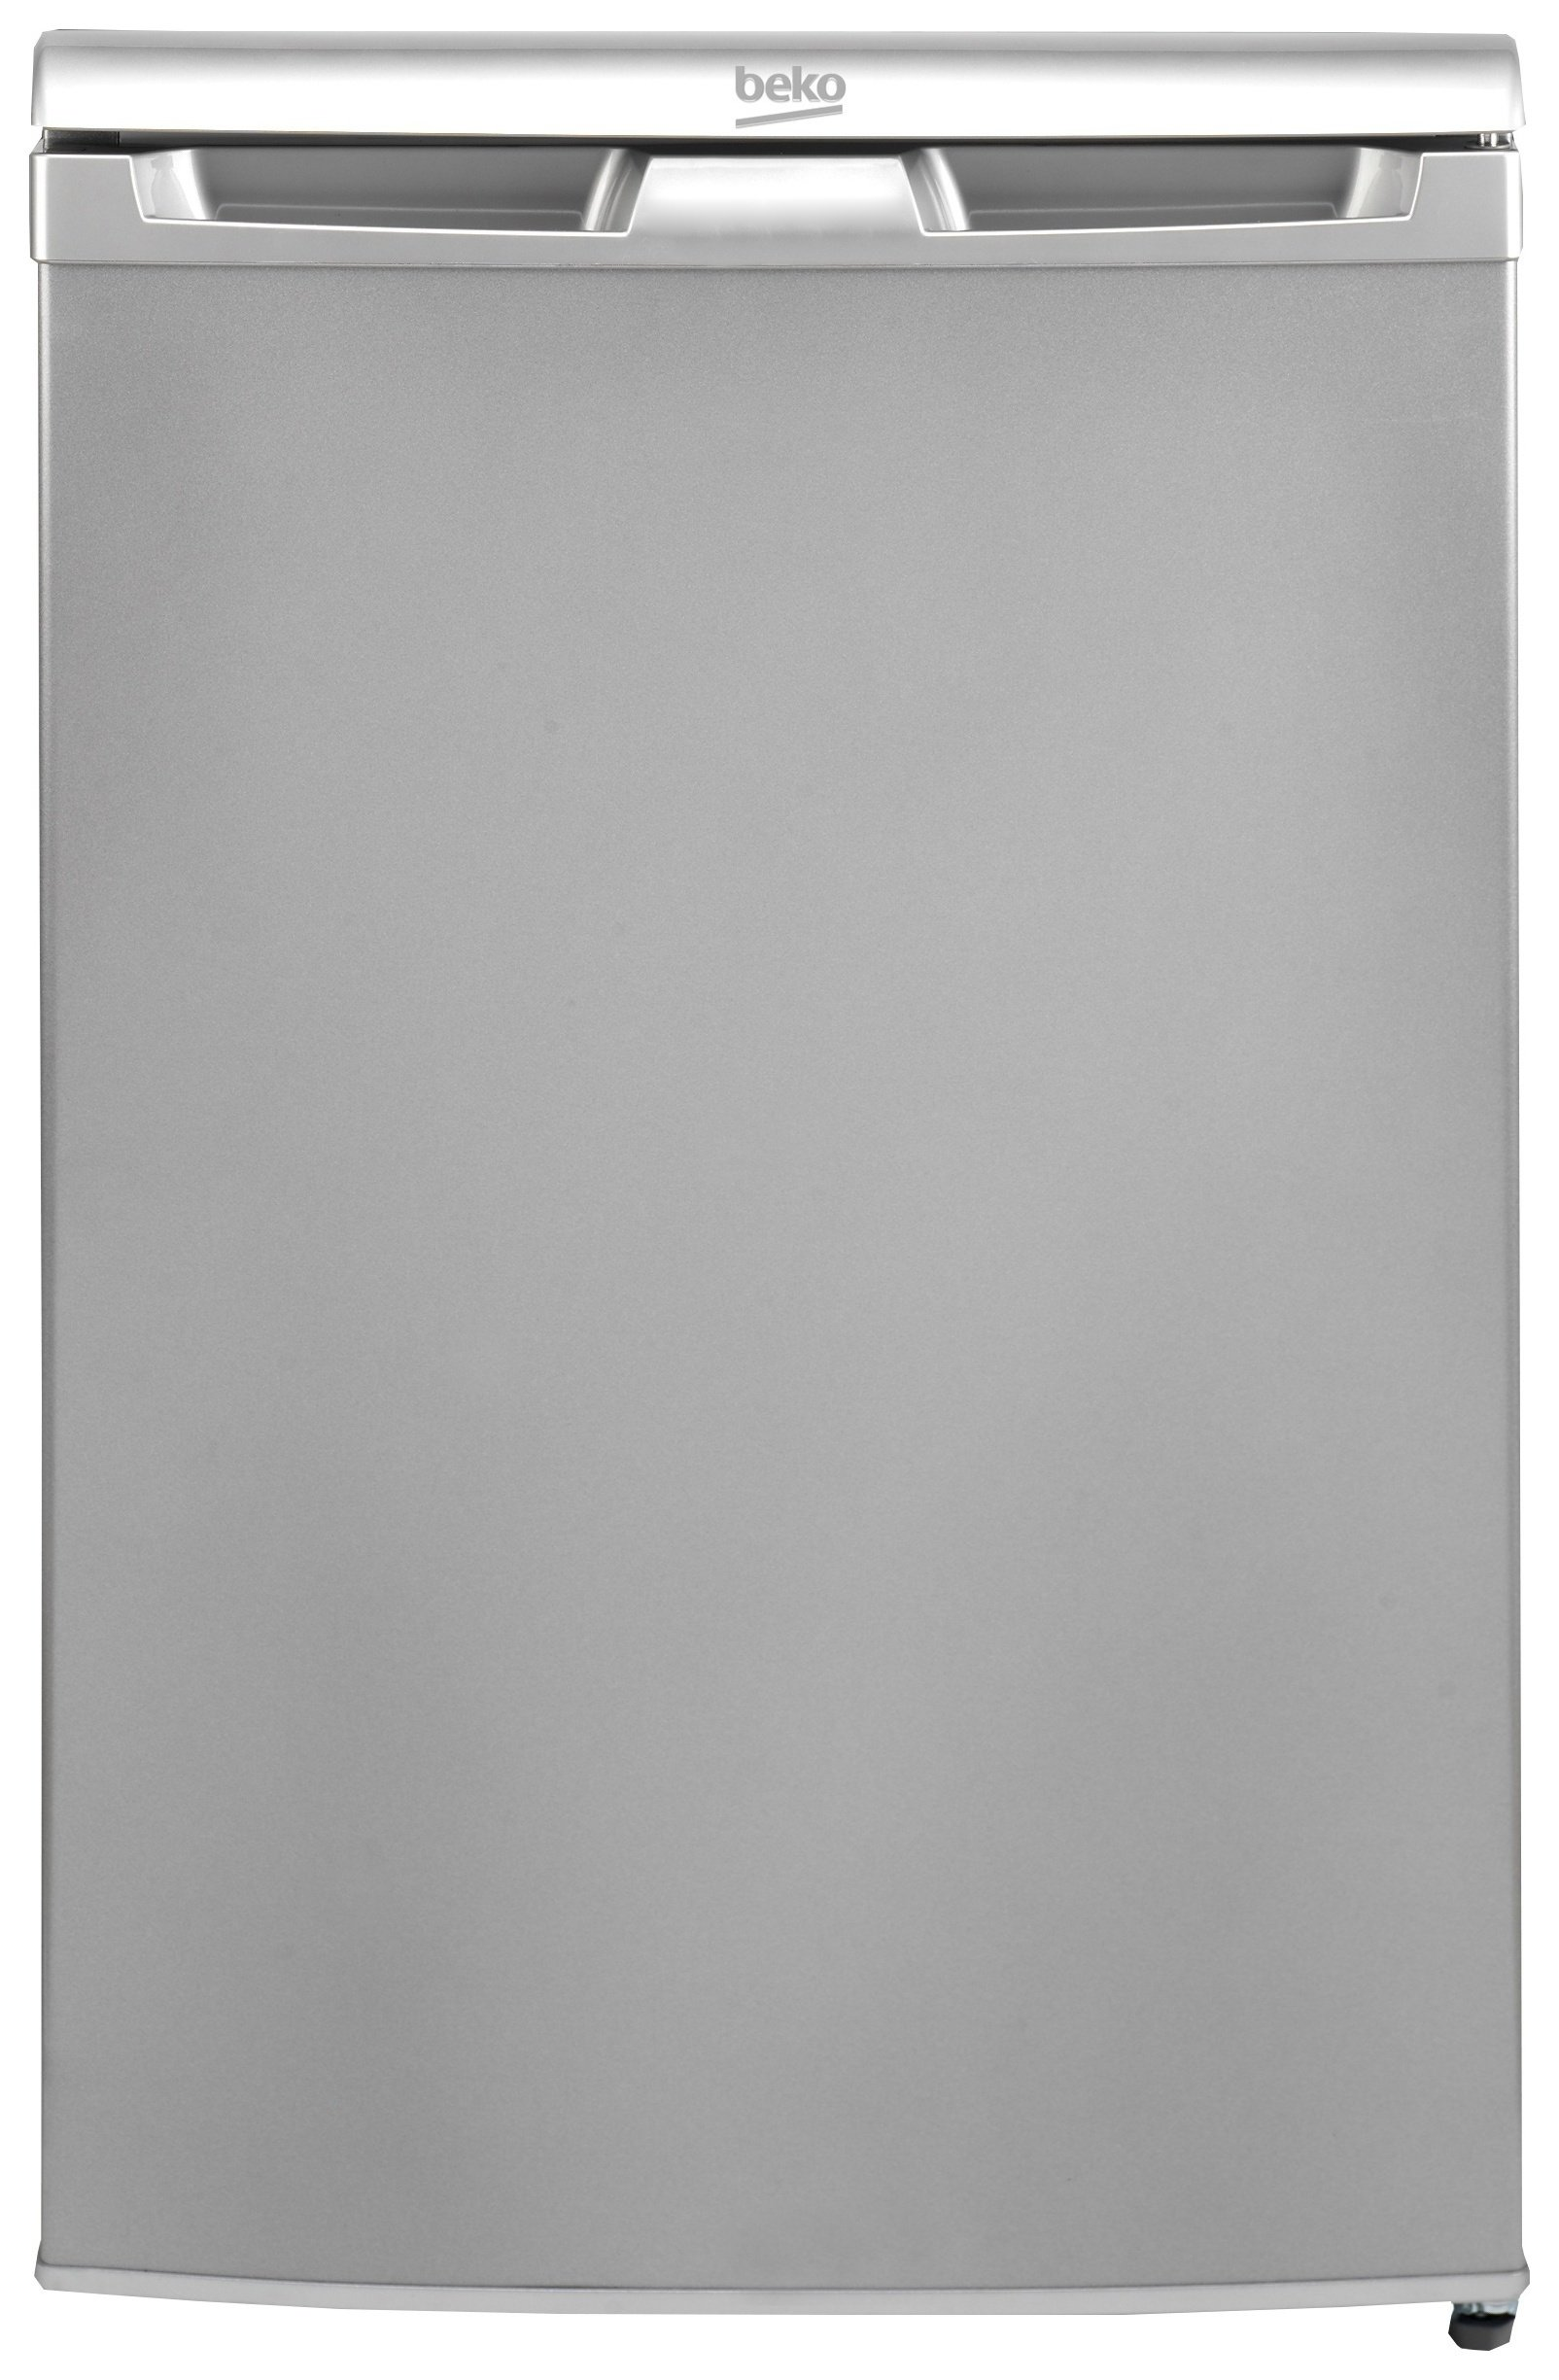 Beko UL584APS Under Counter Larder Fridge - Silver